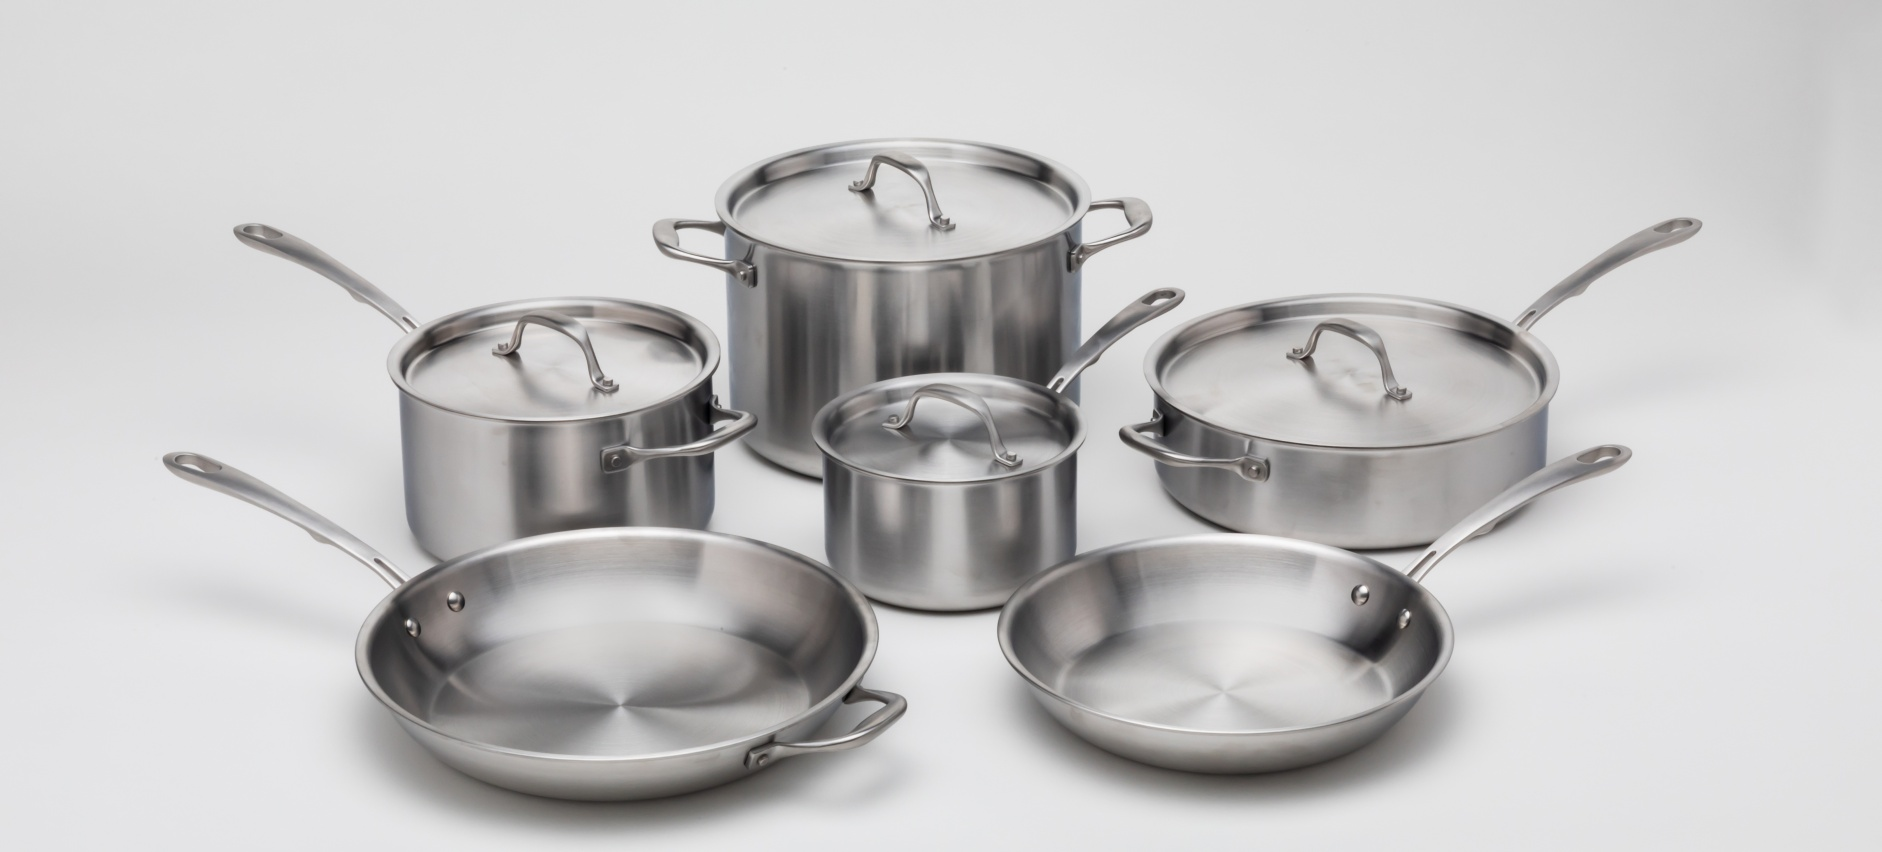 Kitchara Cookware 10-Piece Stainless Steel Set Hands-On ...